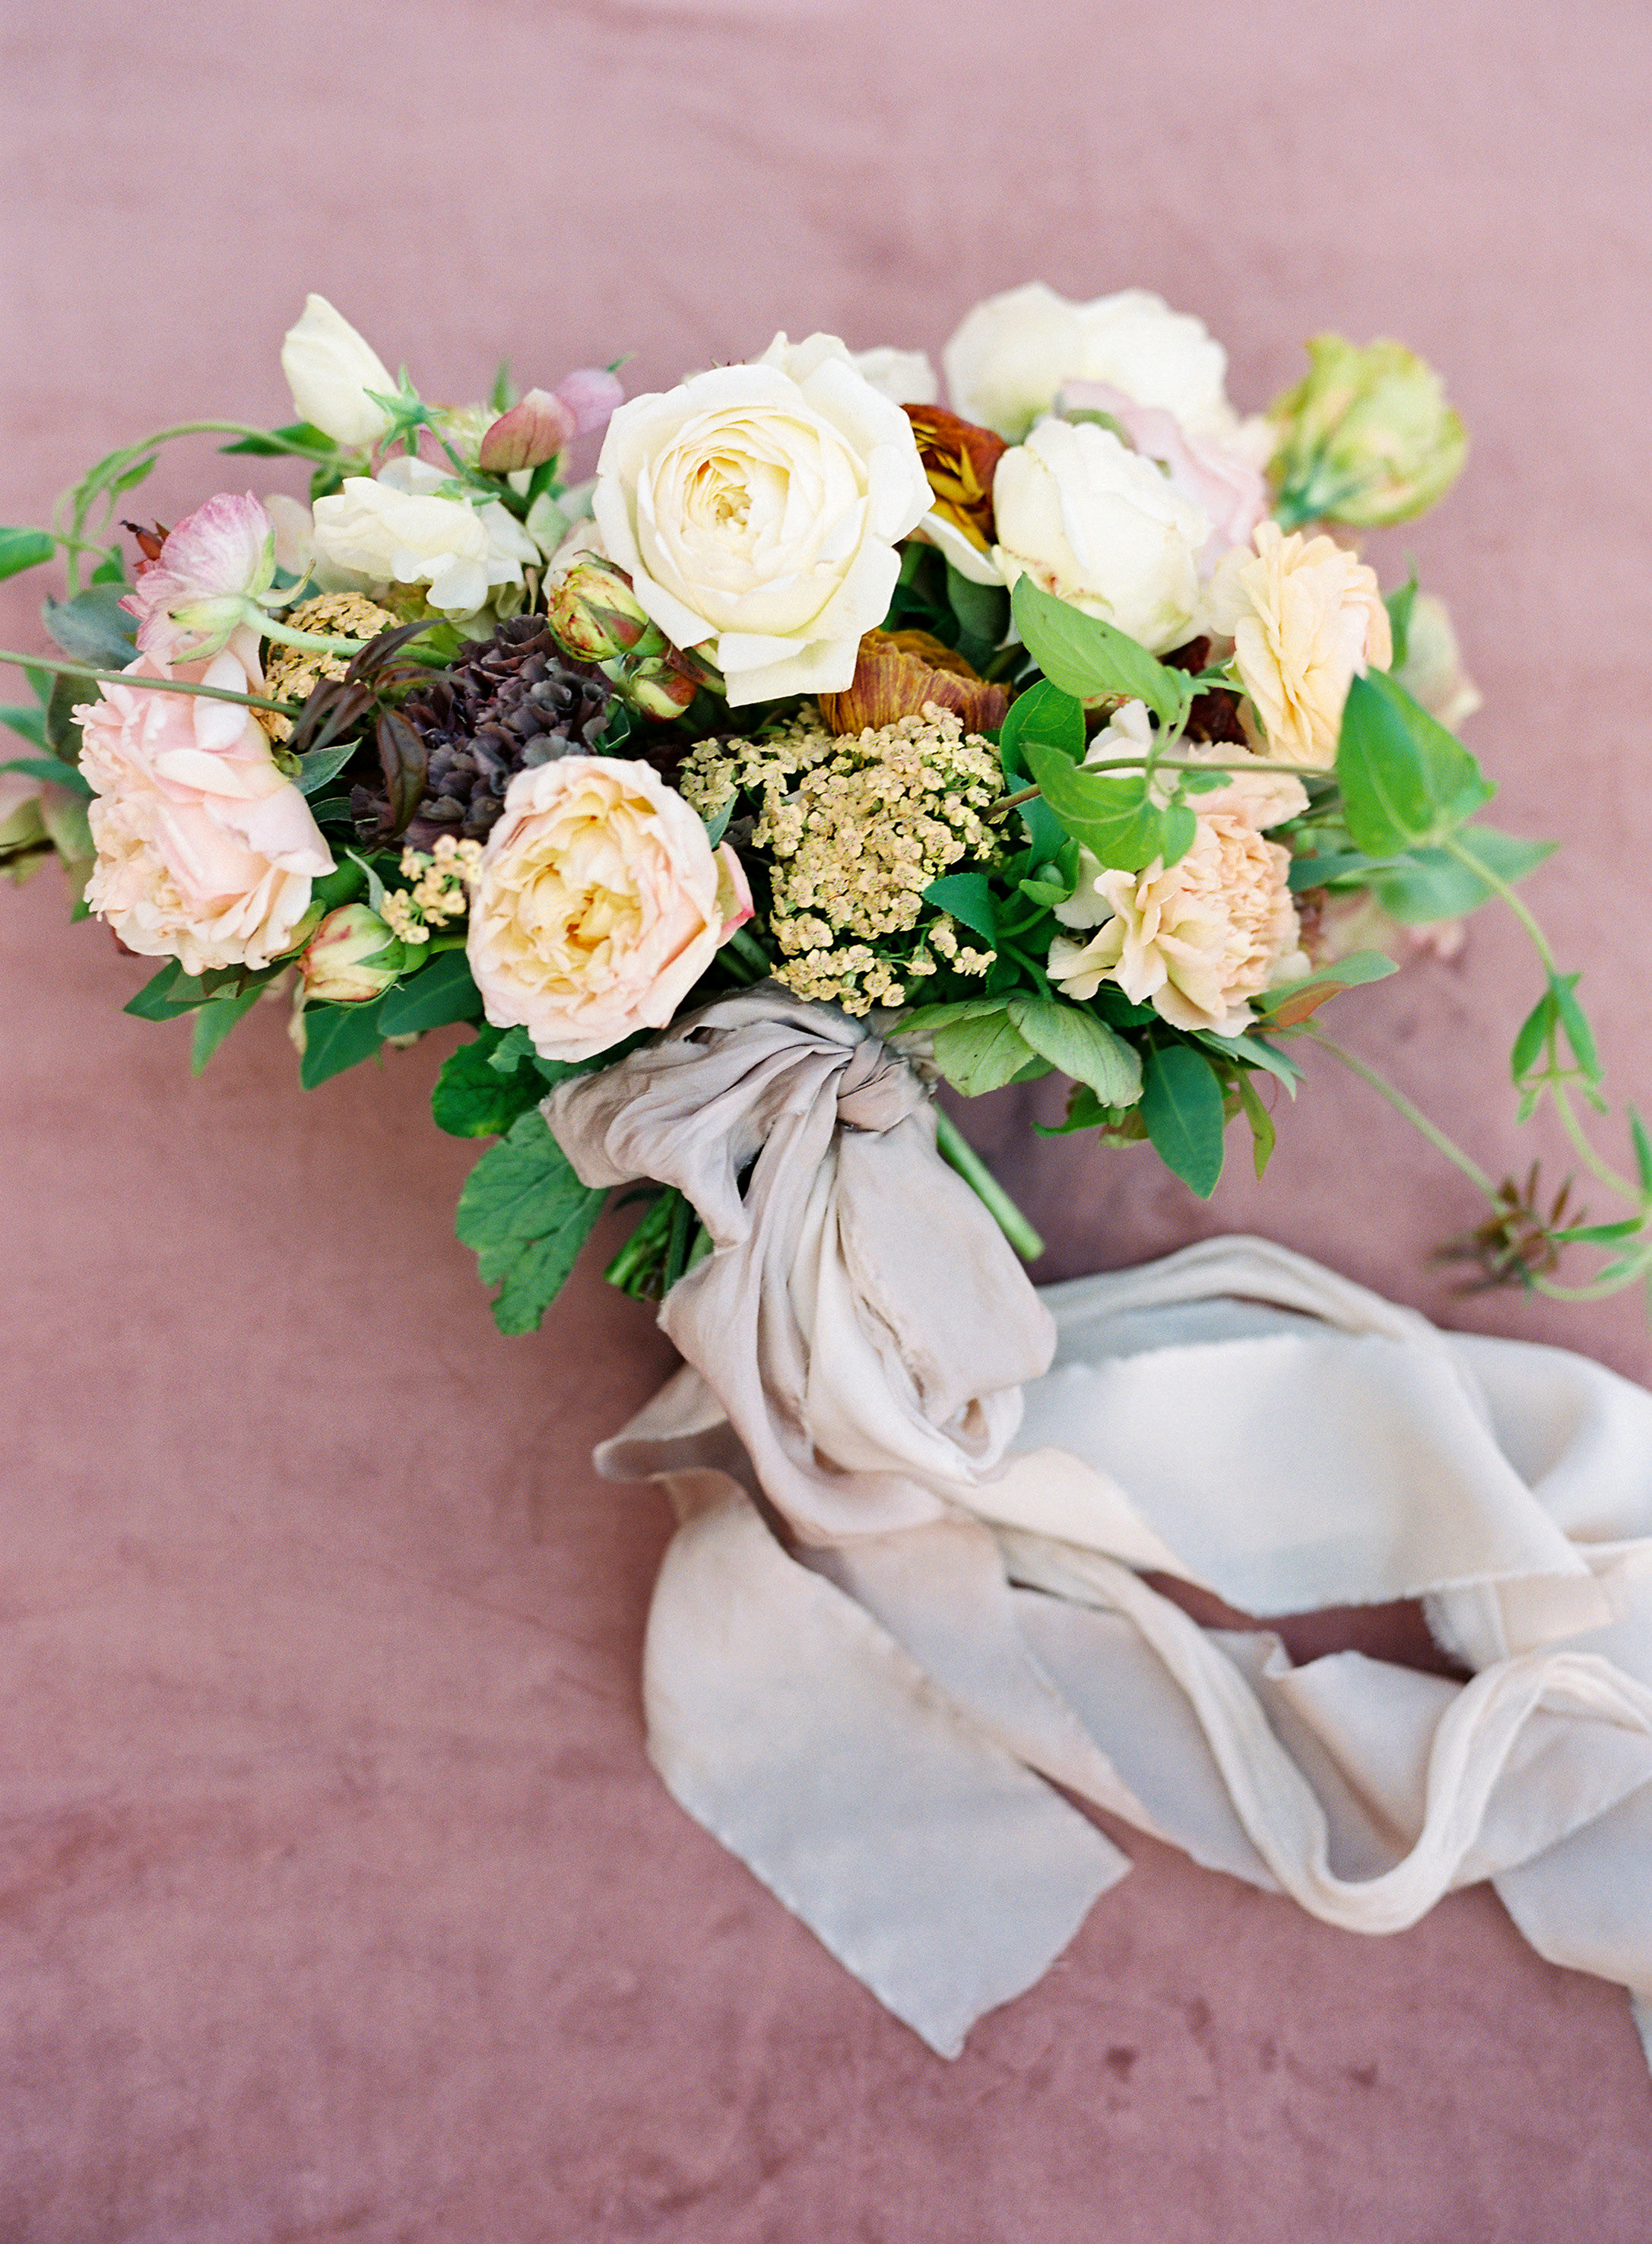 bride wedding bouquet peach gold flowers with greenery